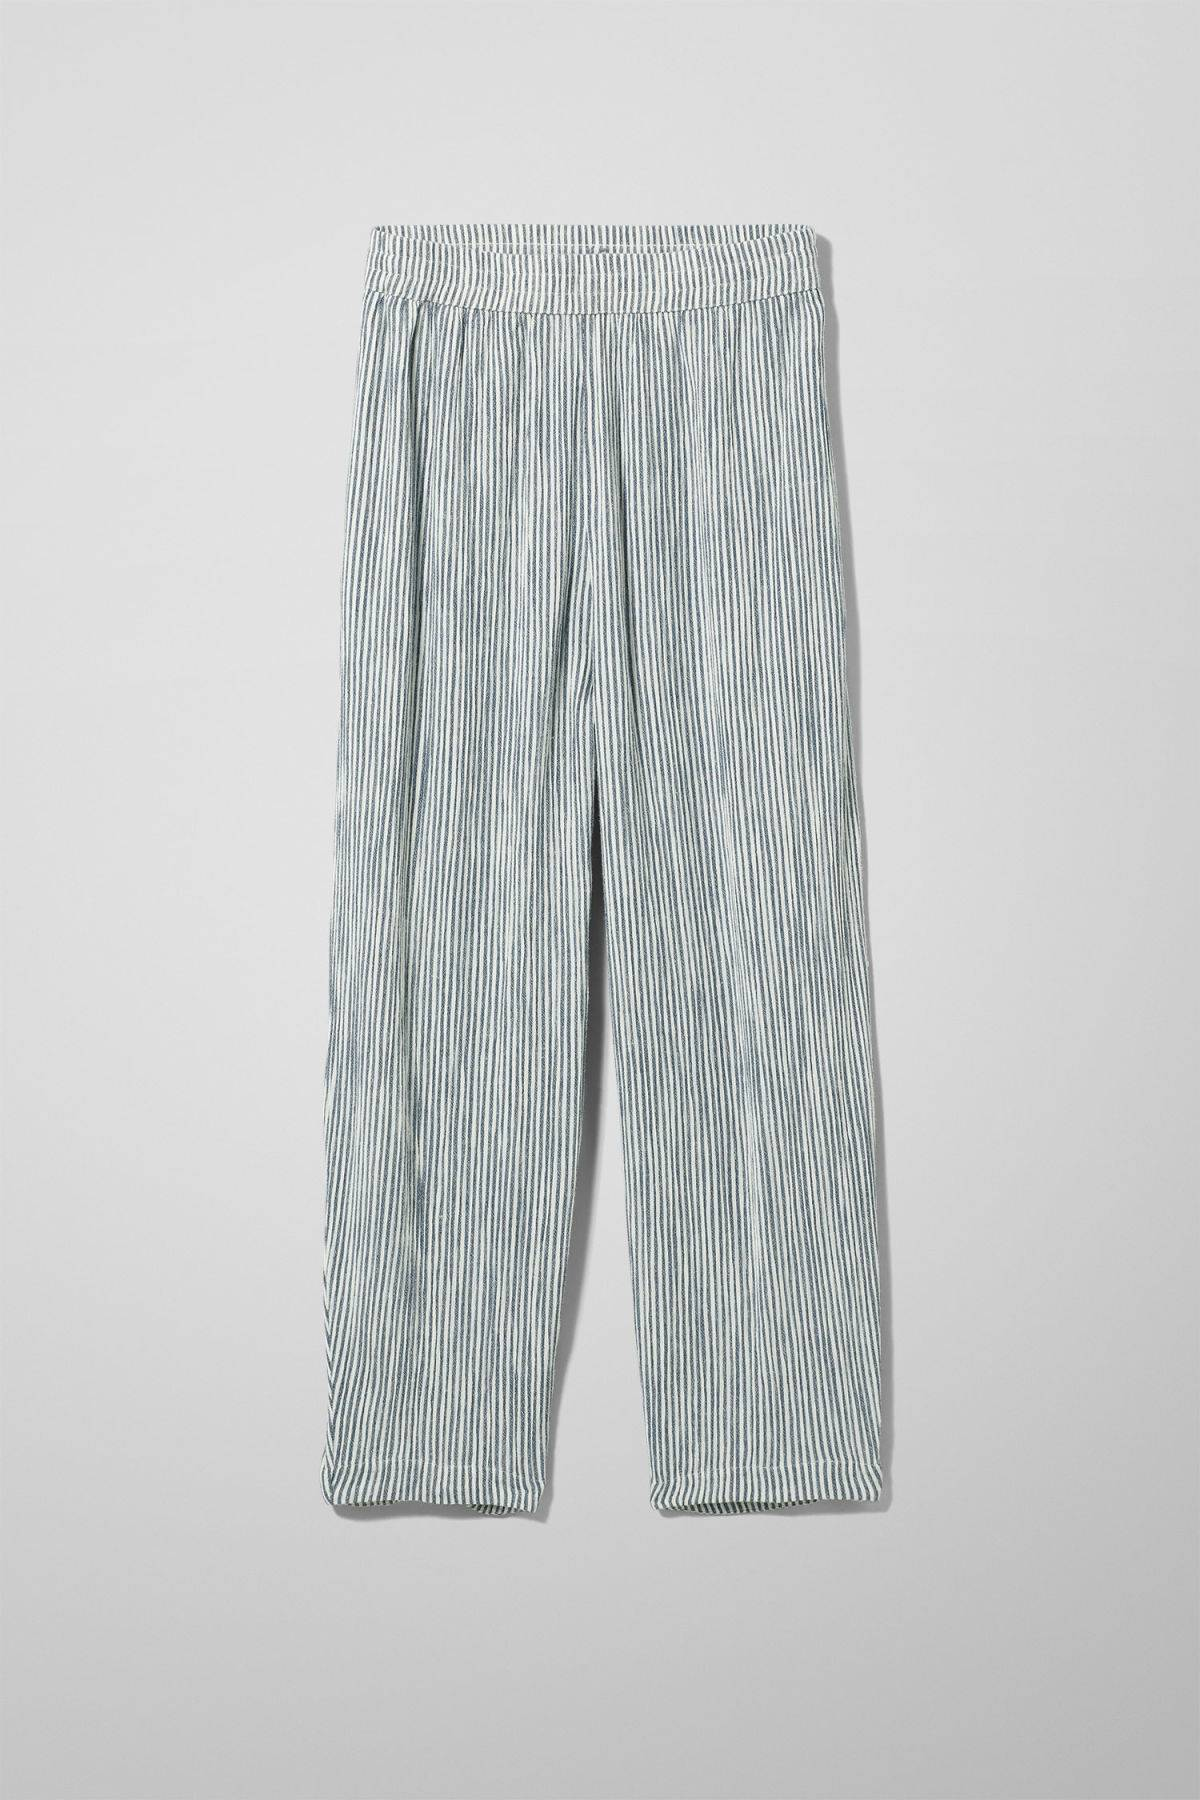 Image of Barb Casual Trousers - White-44